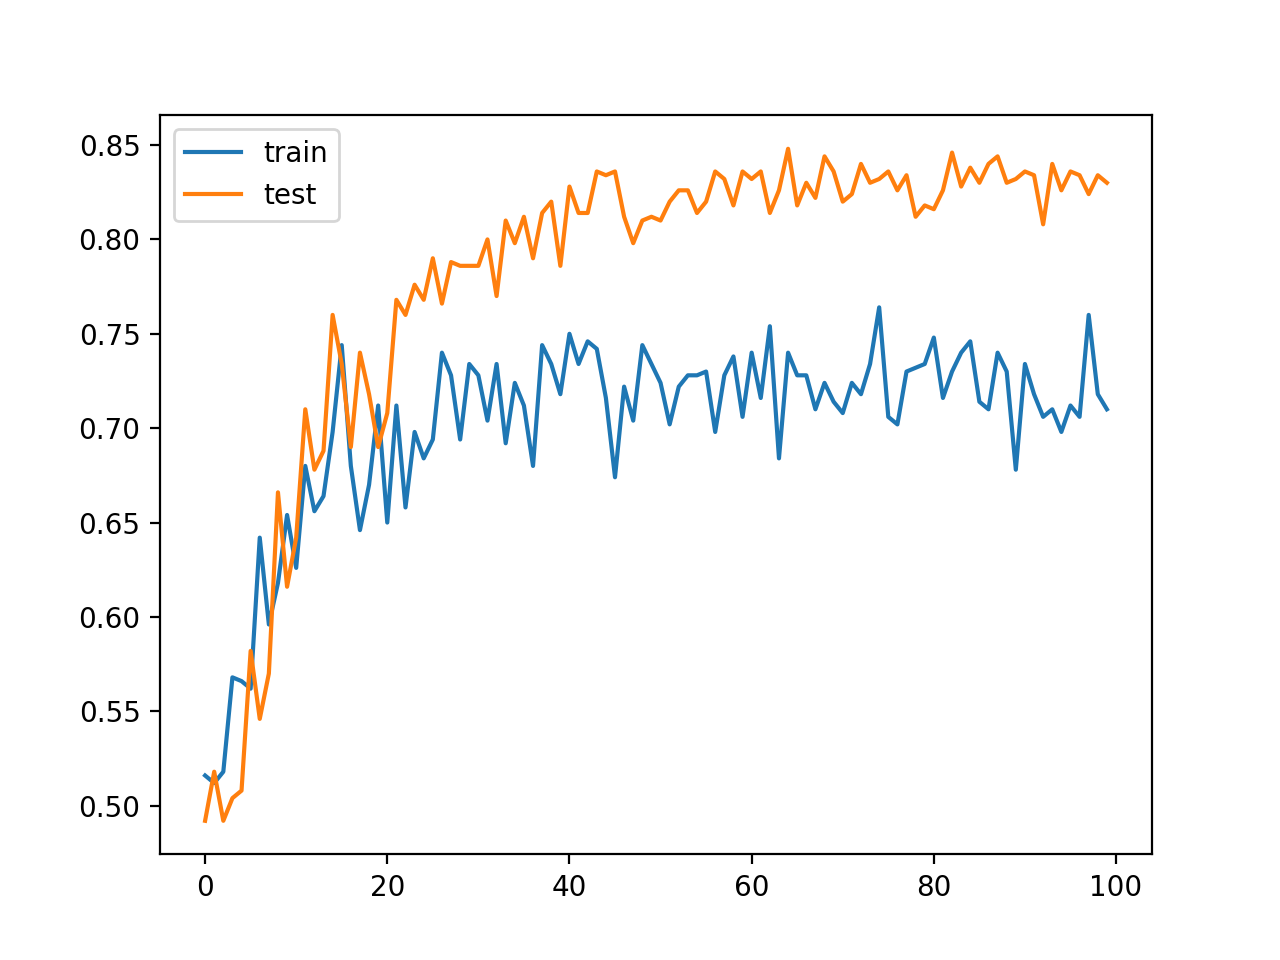 Line Plot Classification Accuracy of MLP With Batch Normalization Before Activation Function on Train and Test Datasets Over Training Epochs